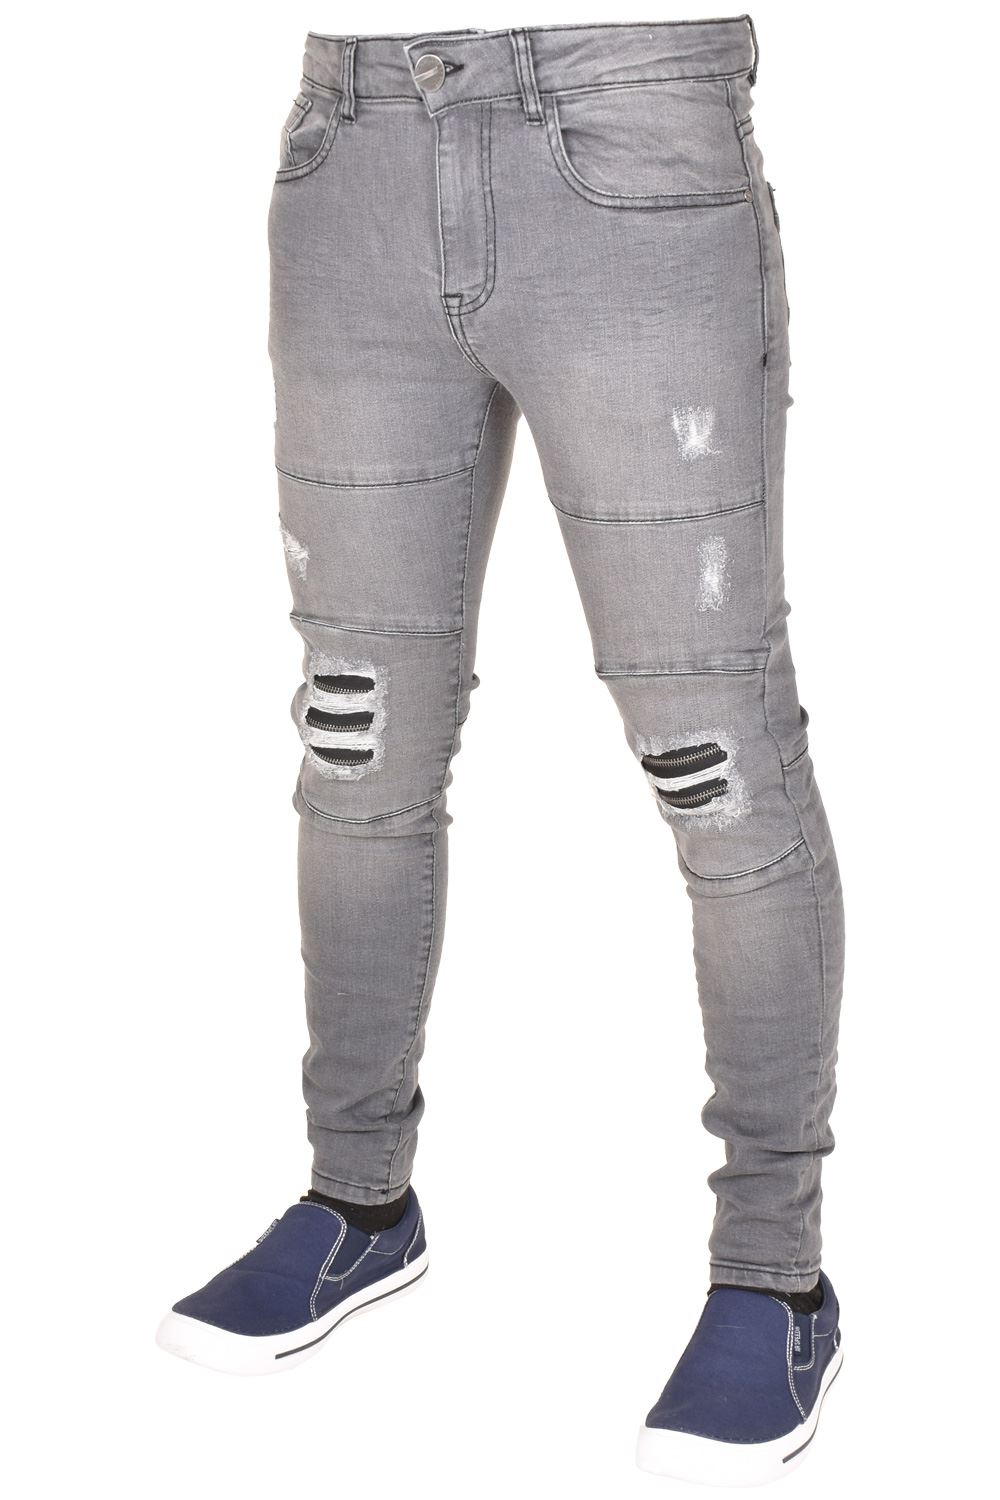 Enzo-Mens-Ripped-Jeans-Skinny-Slim-Fit-Denim-Pants-Casual-Trousers-Size-28-40 thumbnail 3